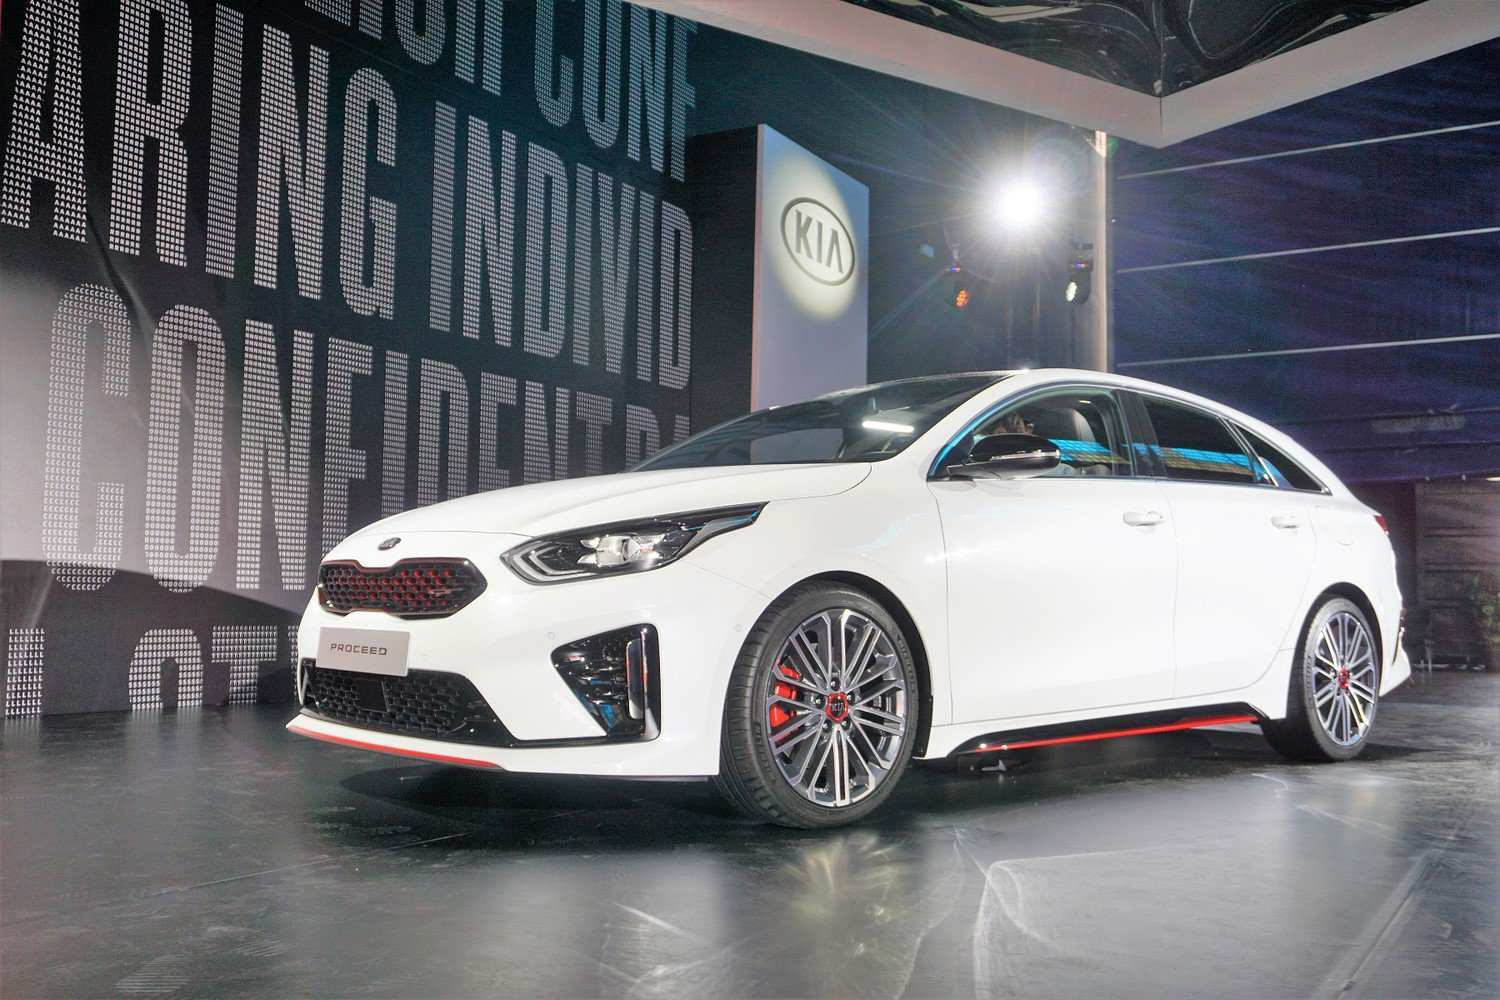 61 The Kia Pro Ceed Gt 2019 Price And Release Date